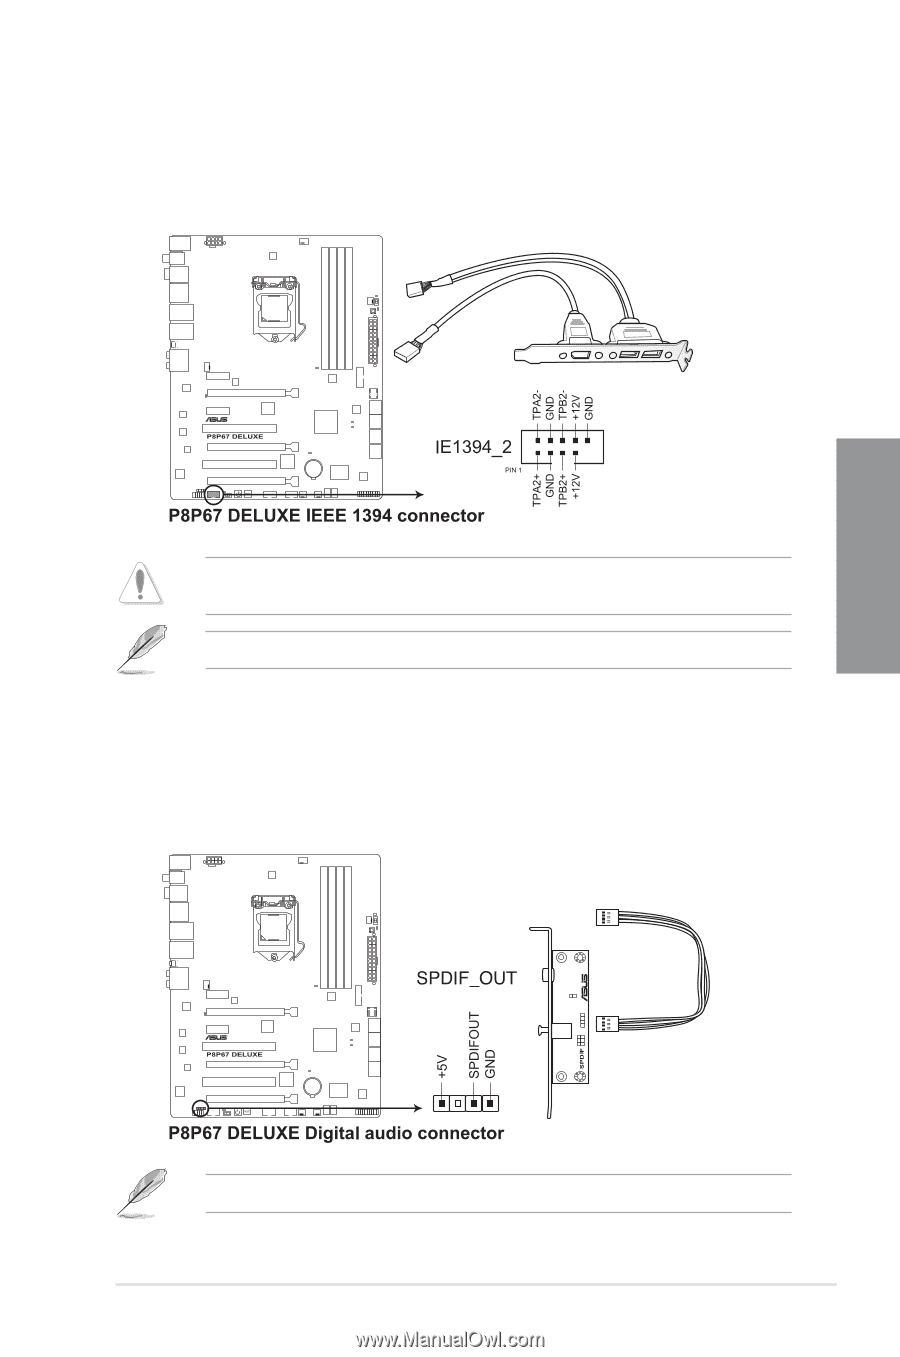 asus p8p67 deluxe manual pdf on